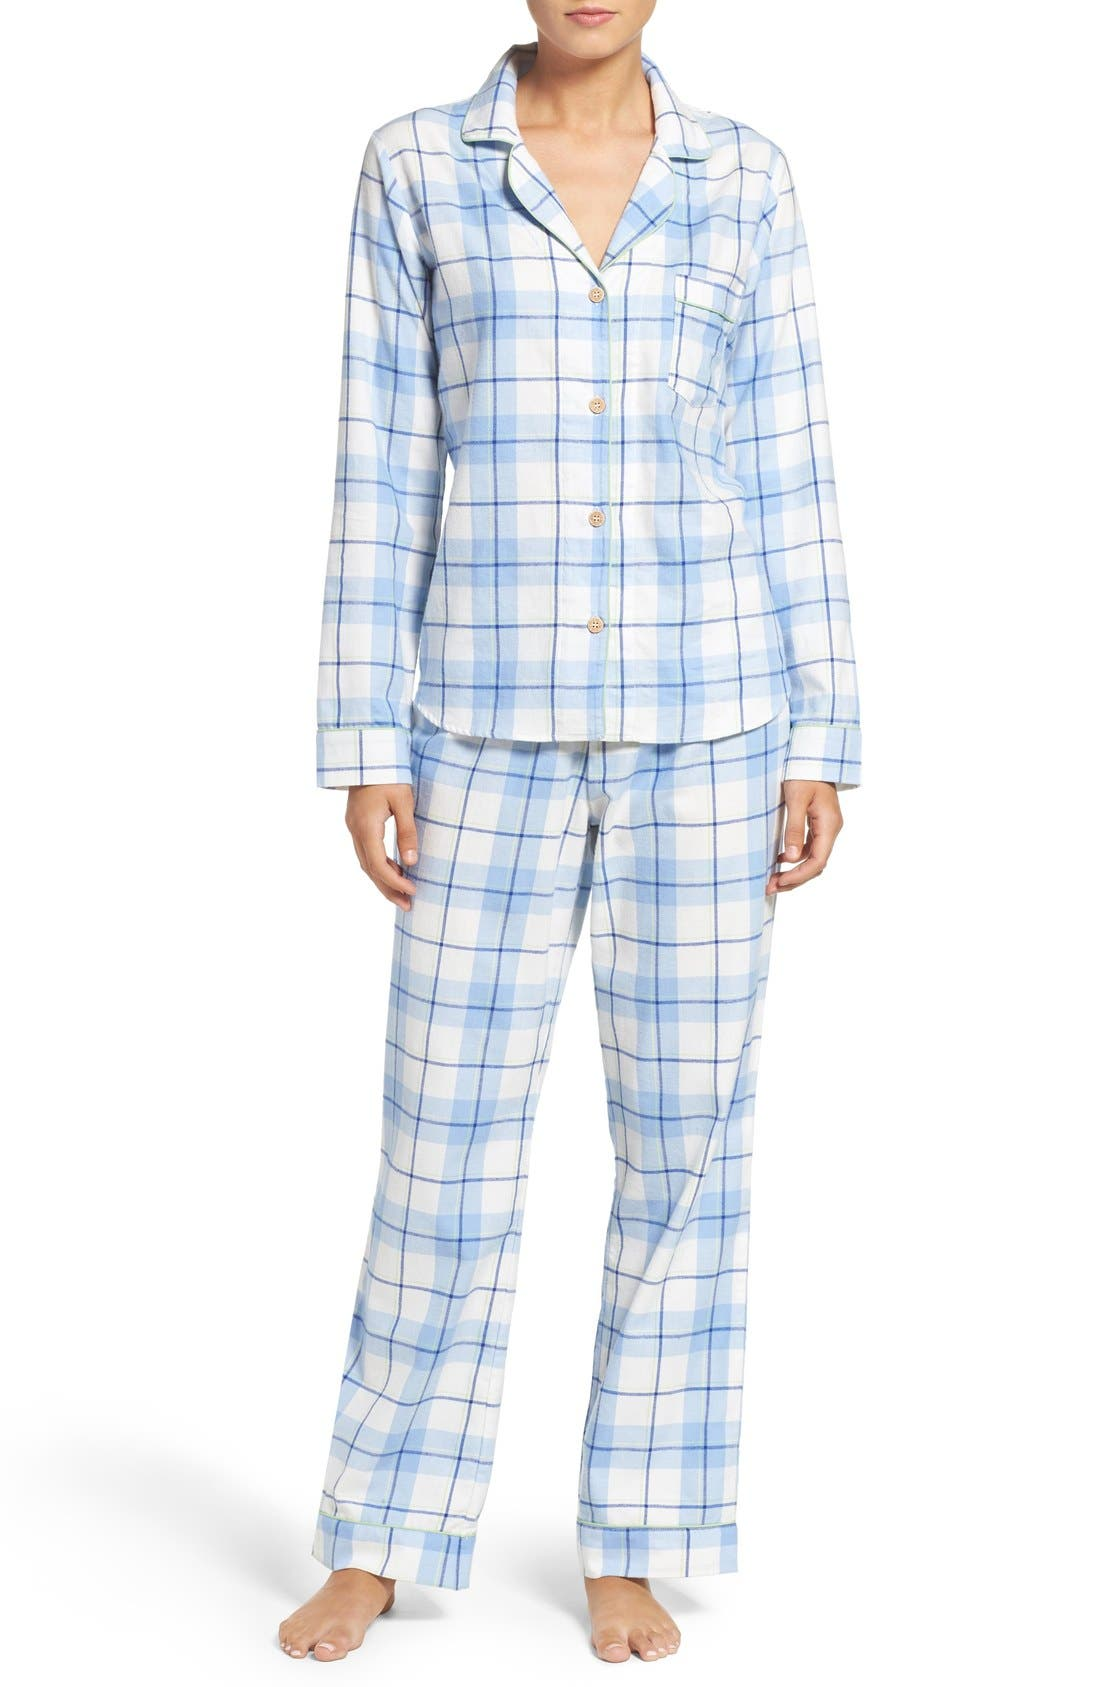 Alternate Image 1 Selected - UGG® 'Raven' Plaid Cotton Pajamas